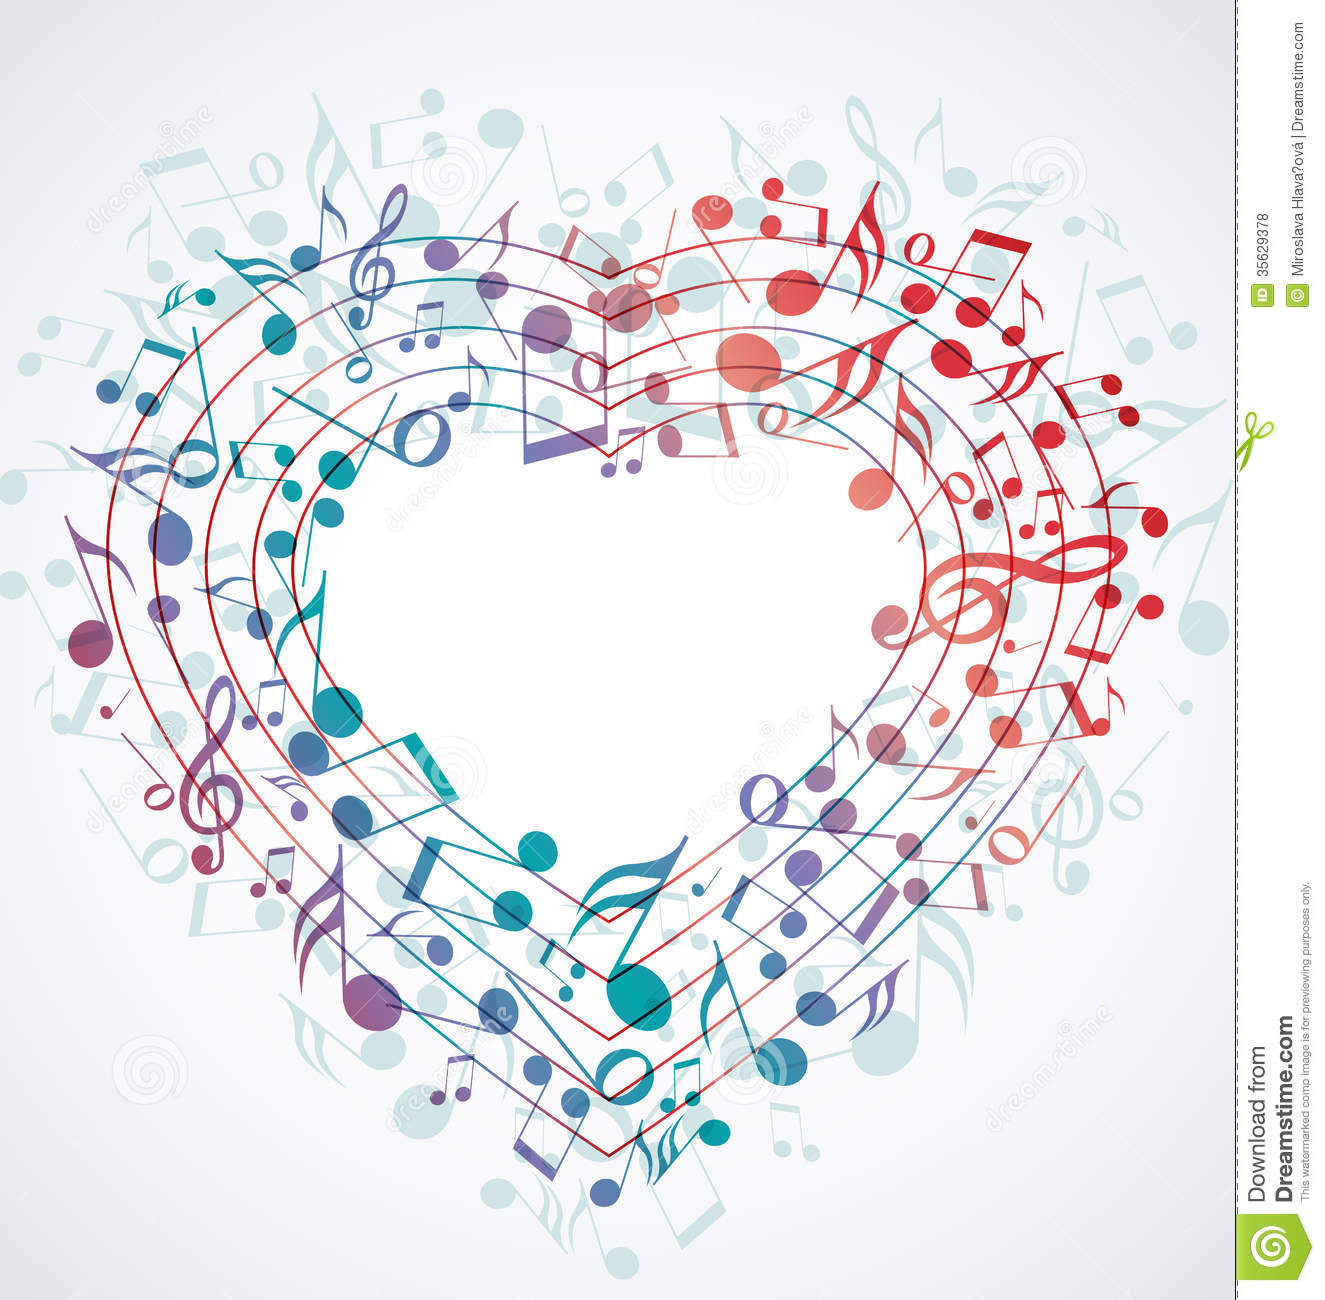 Good Wallpaper Music Heart - heart-background-made-up-musical-notes-35629378  Collection_4675.jpg